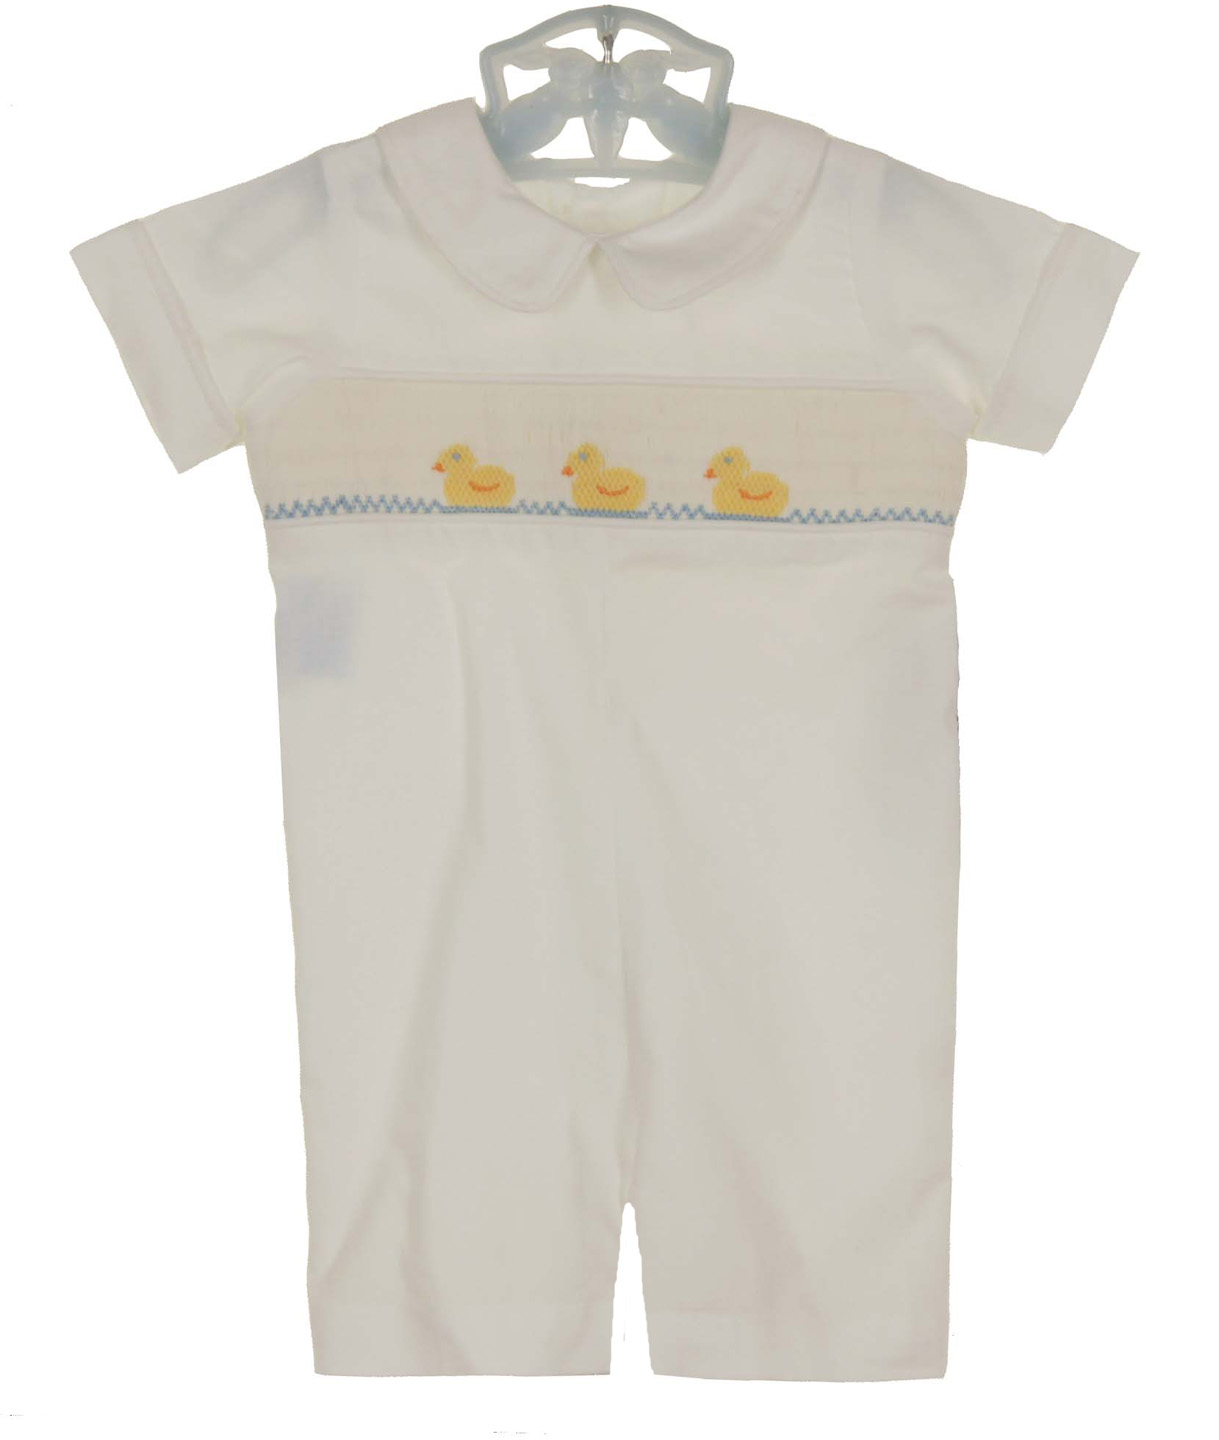 d3e172be6 NEW Remember Nguyen (Remember When) White Cotton Smocked Romper with Duck  Embroidery